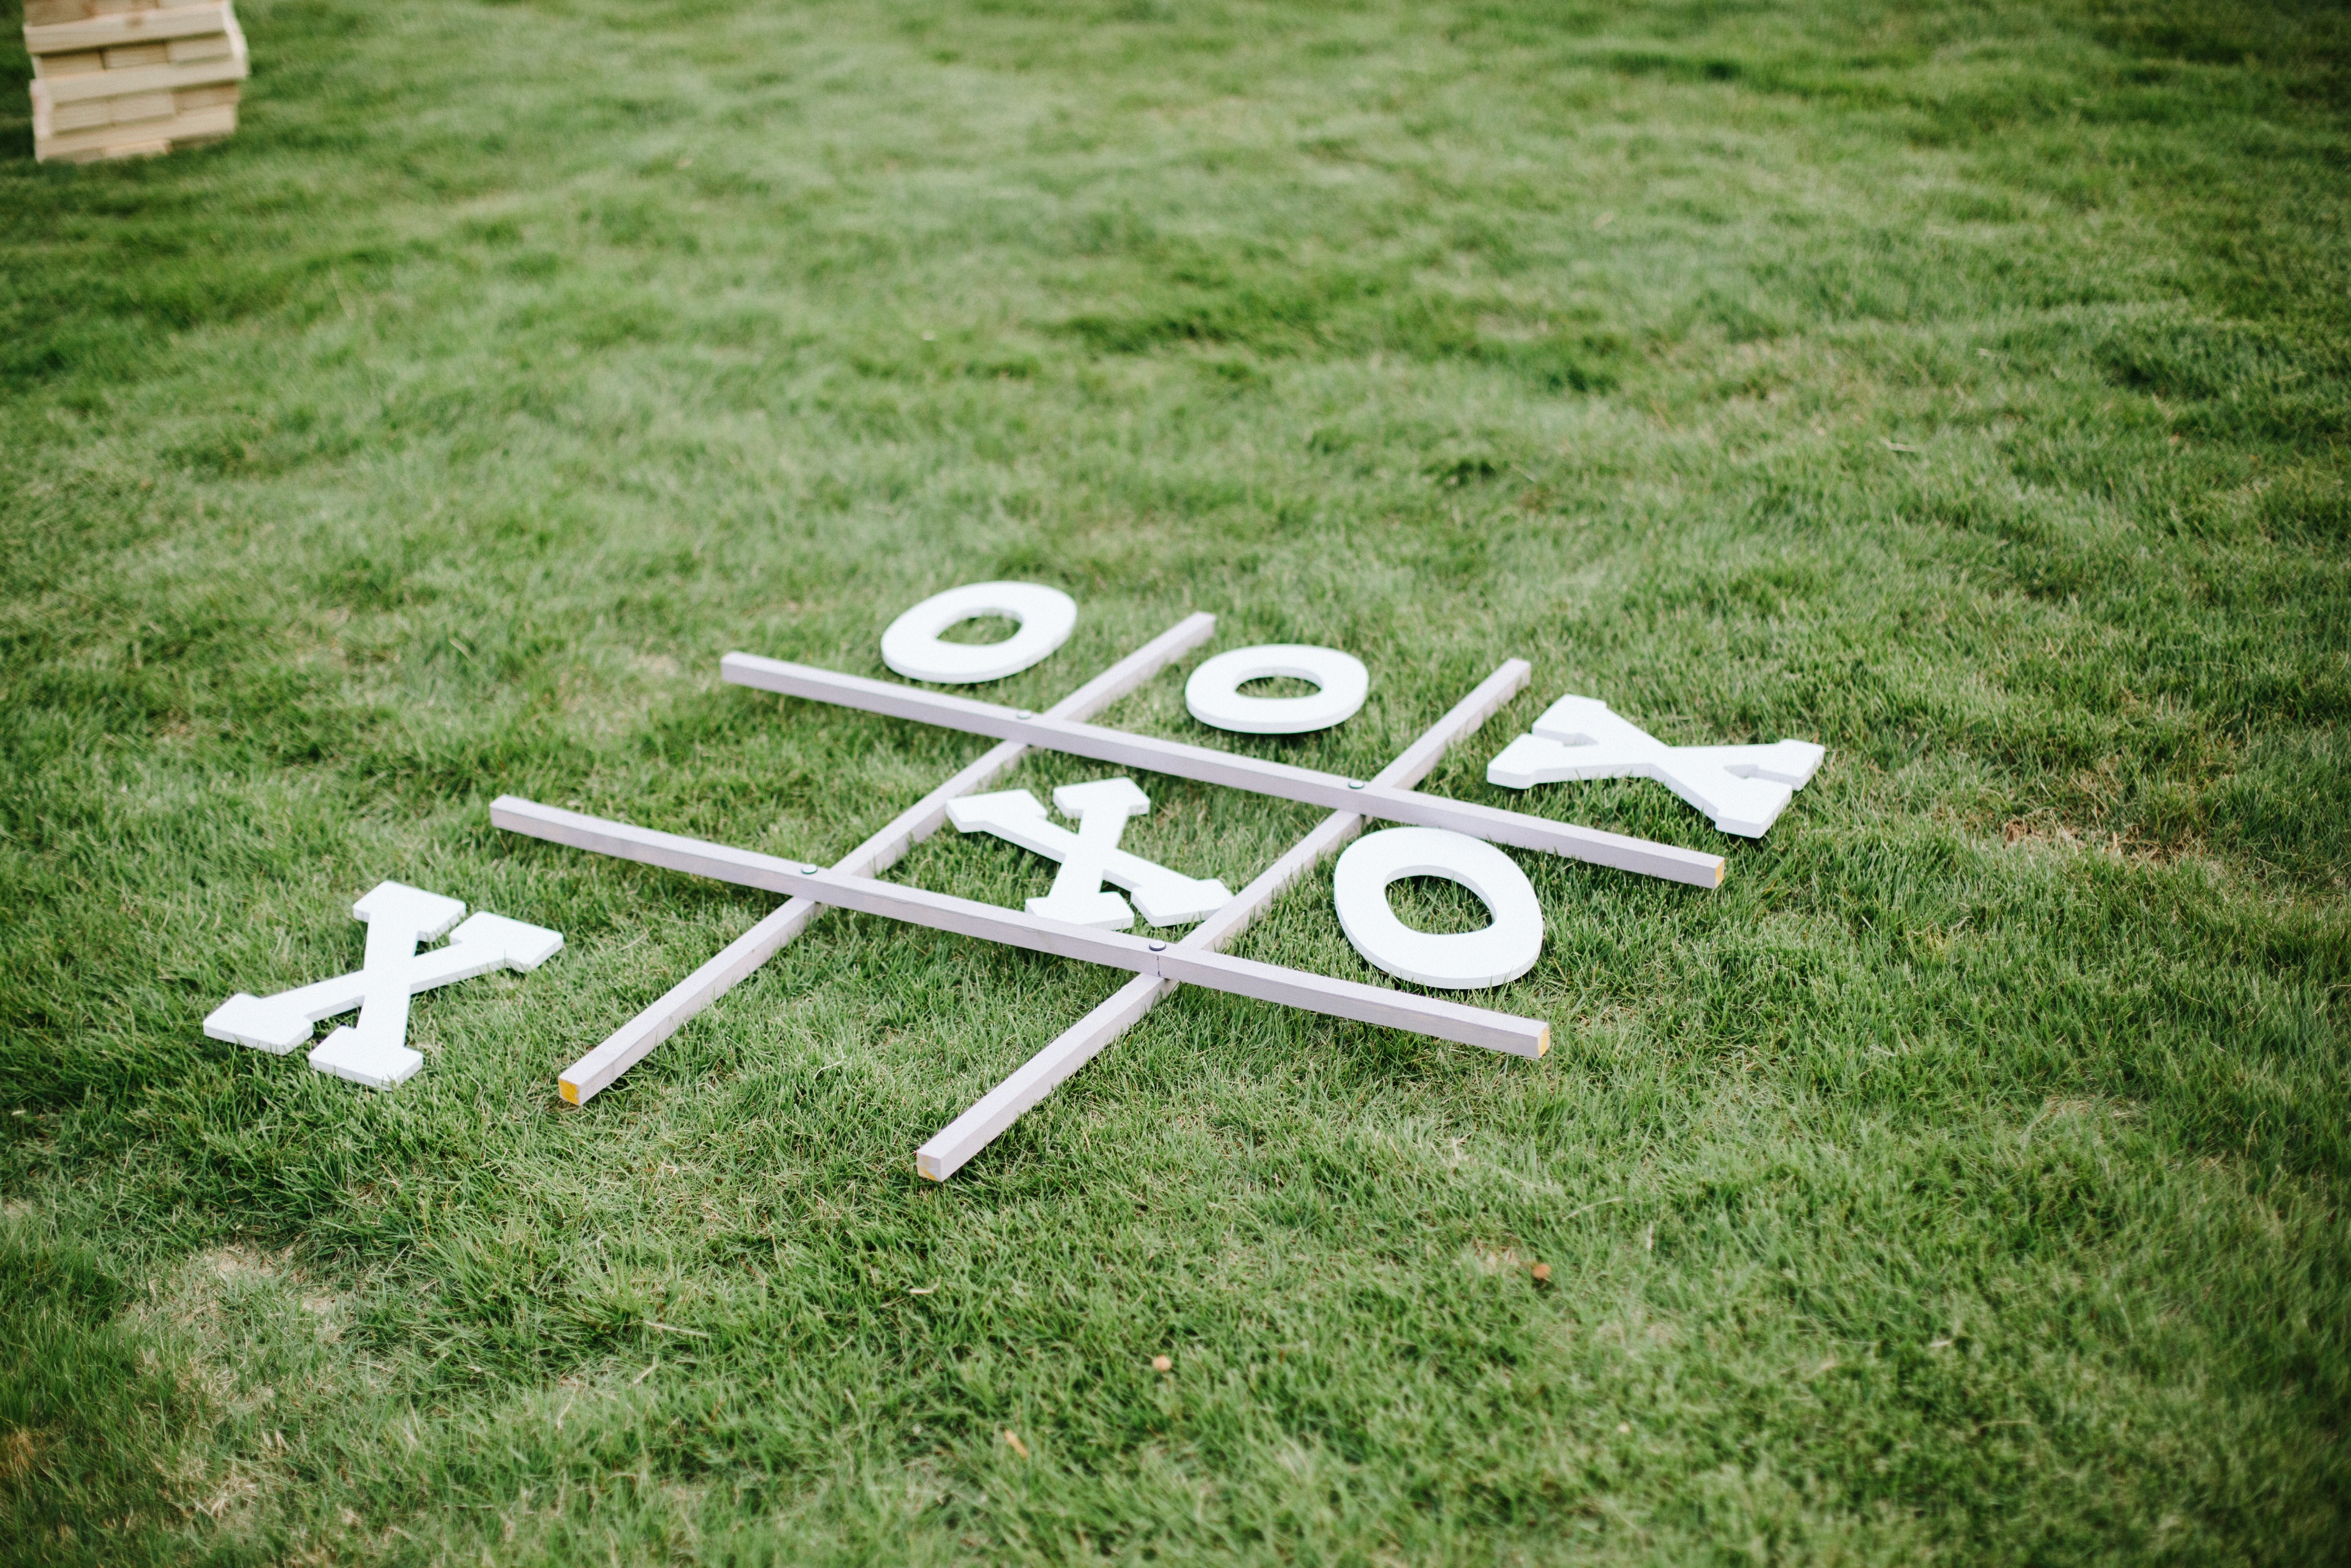 Tic Tac Toe Lawn Game